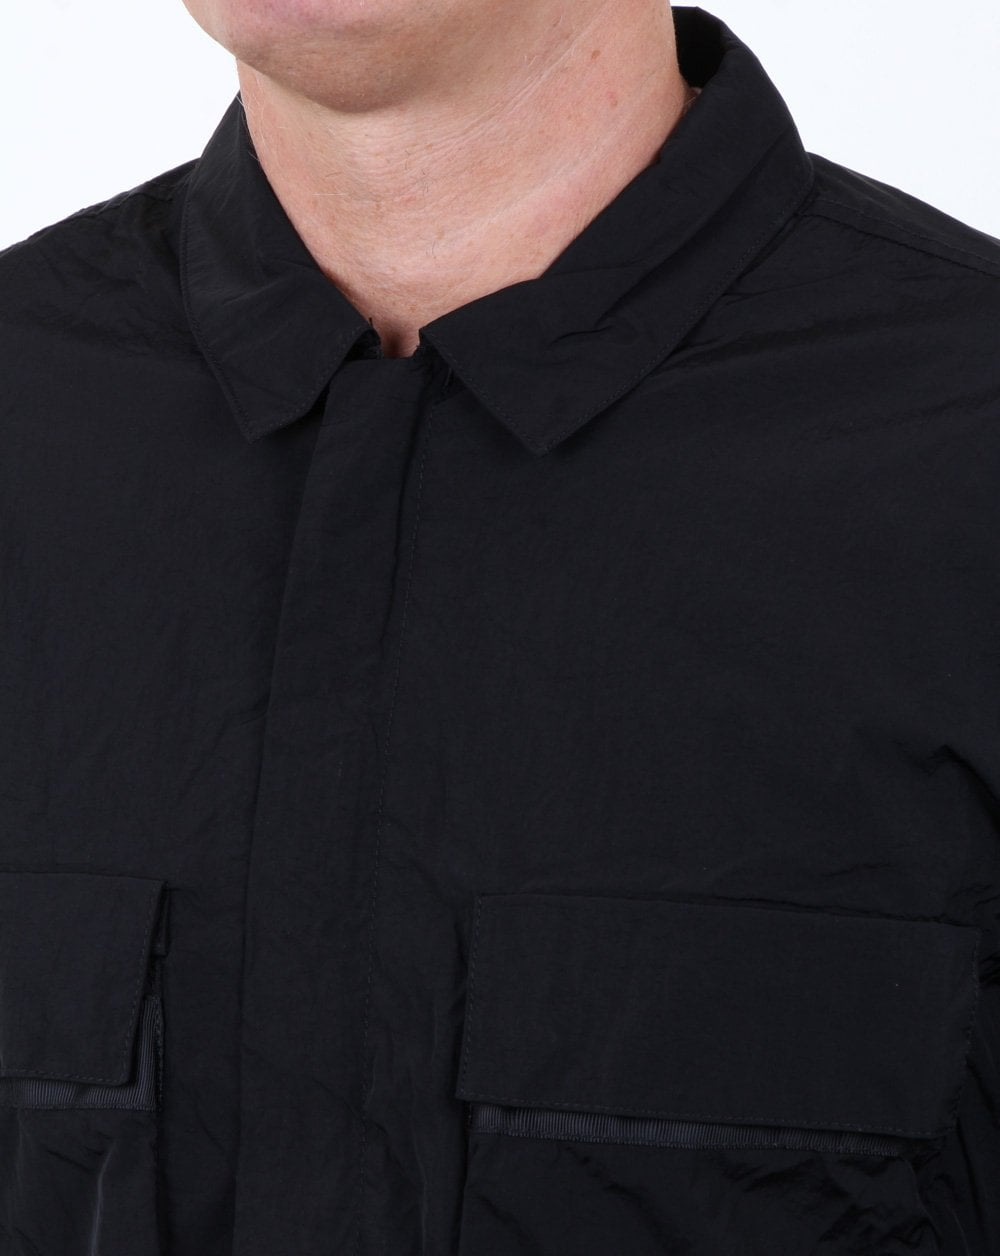 0d7a3da7a75 Marshall Artist Liquid Bellow Pocket Overshirt Black